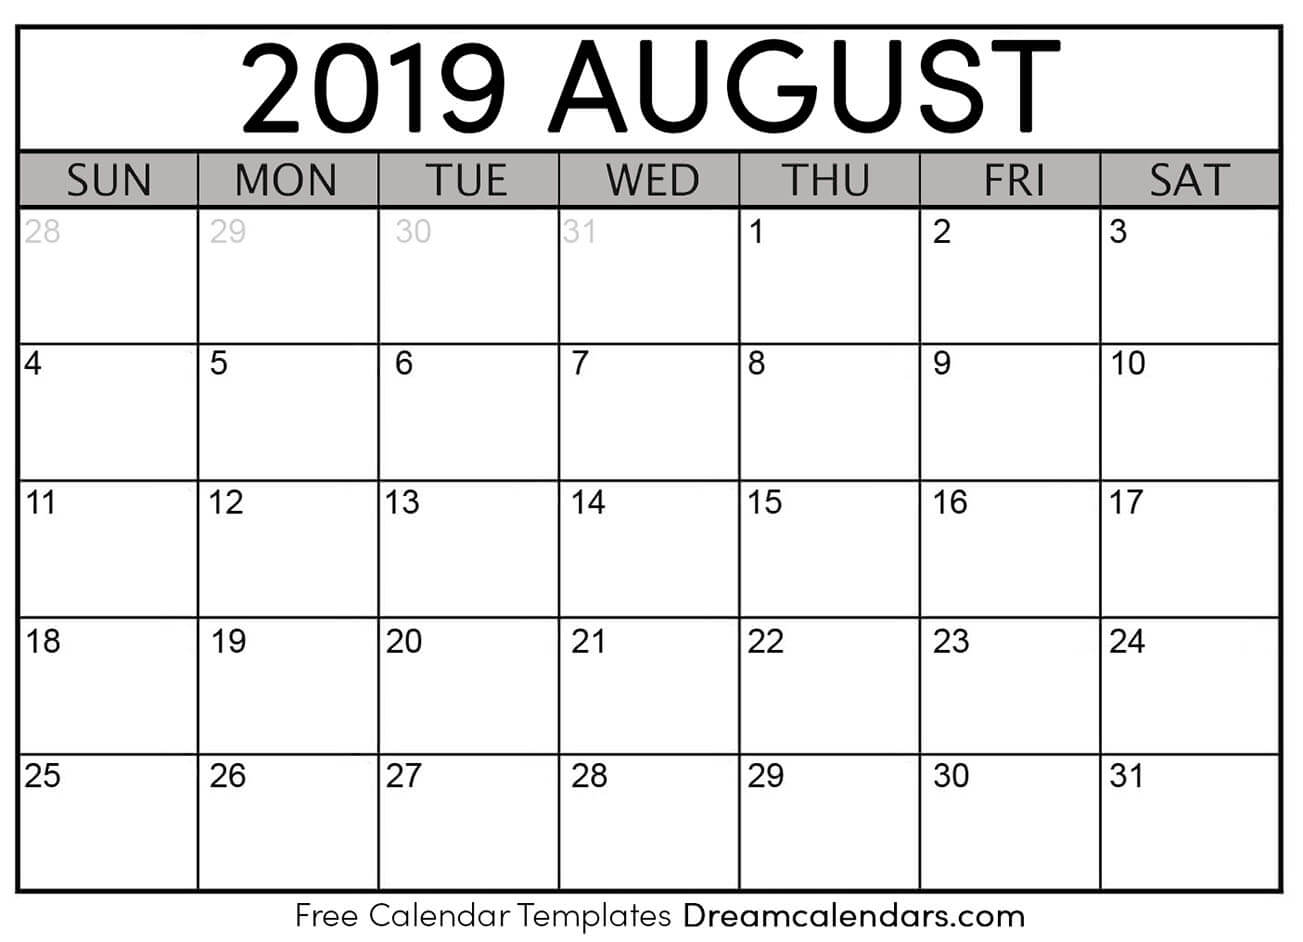 Printable 2019 August Calendar Monthly Template